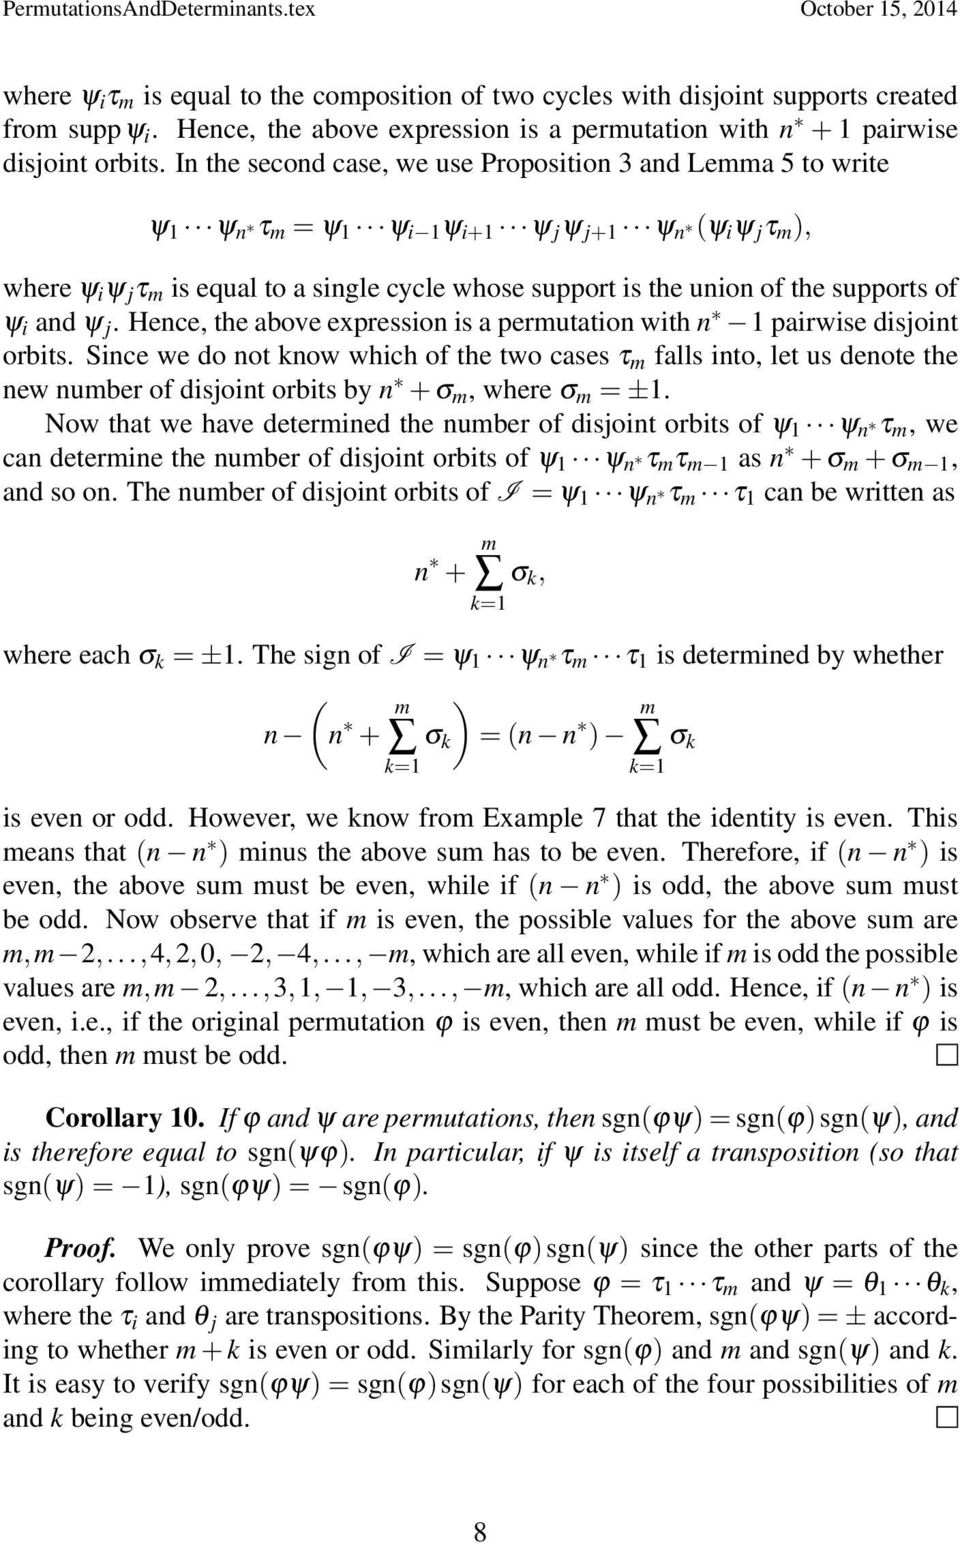 of ψ i ad ψ j. Hece, the above expressio is a permutatio with 1 pairwise disjoit orbits.